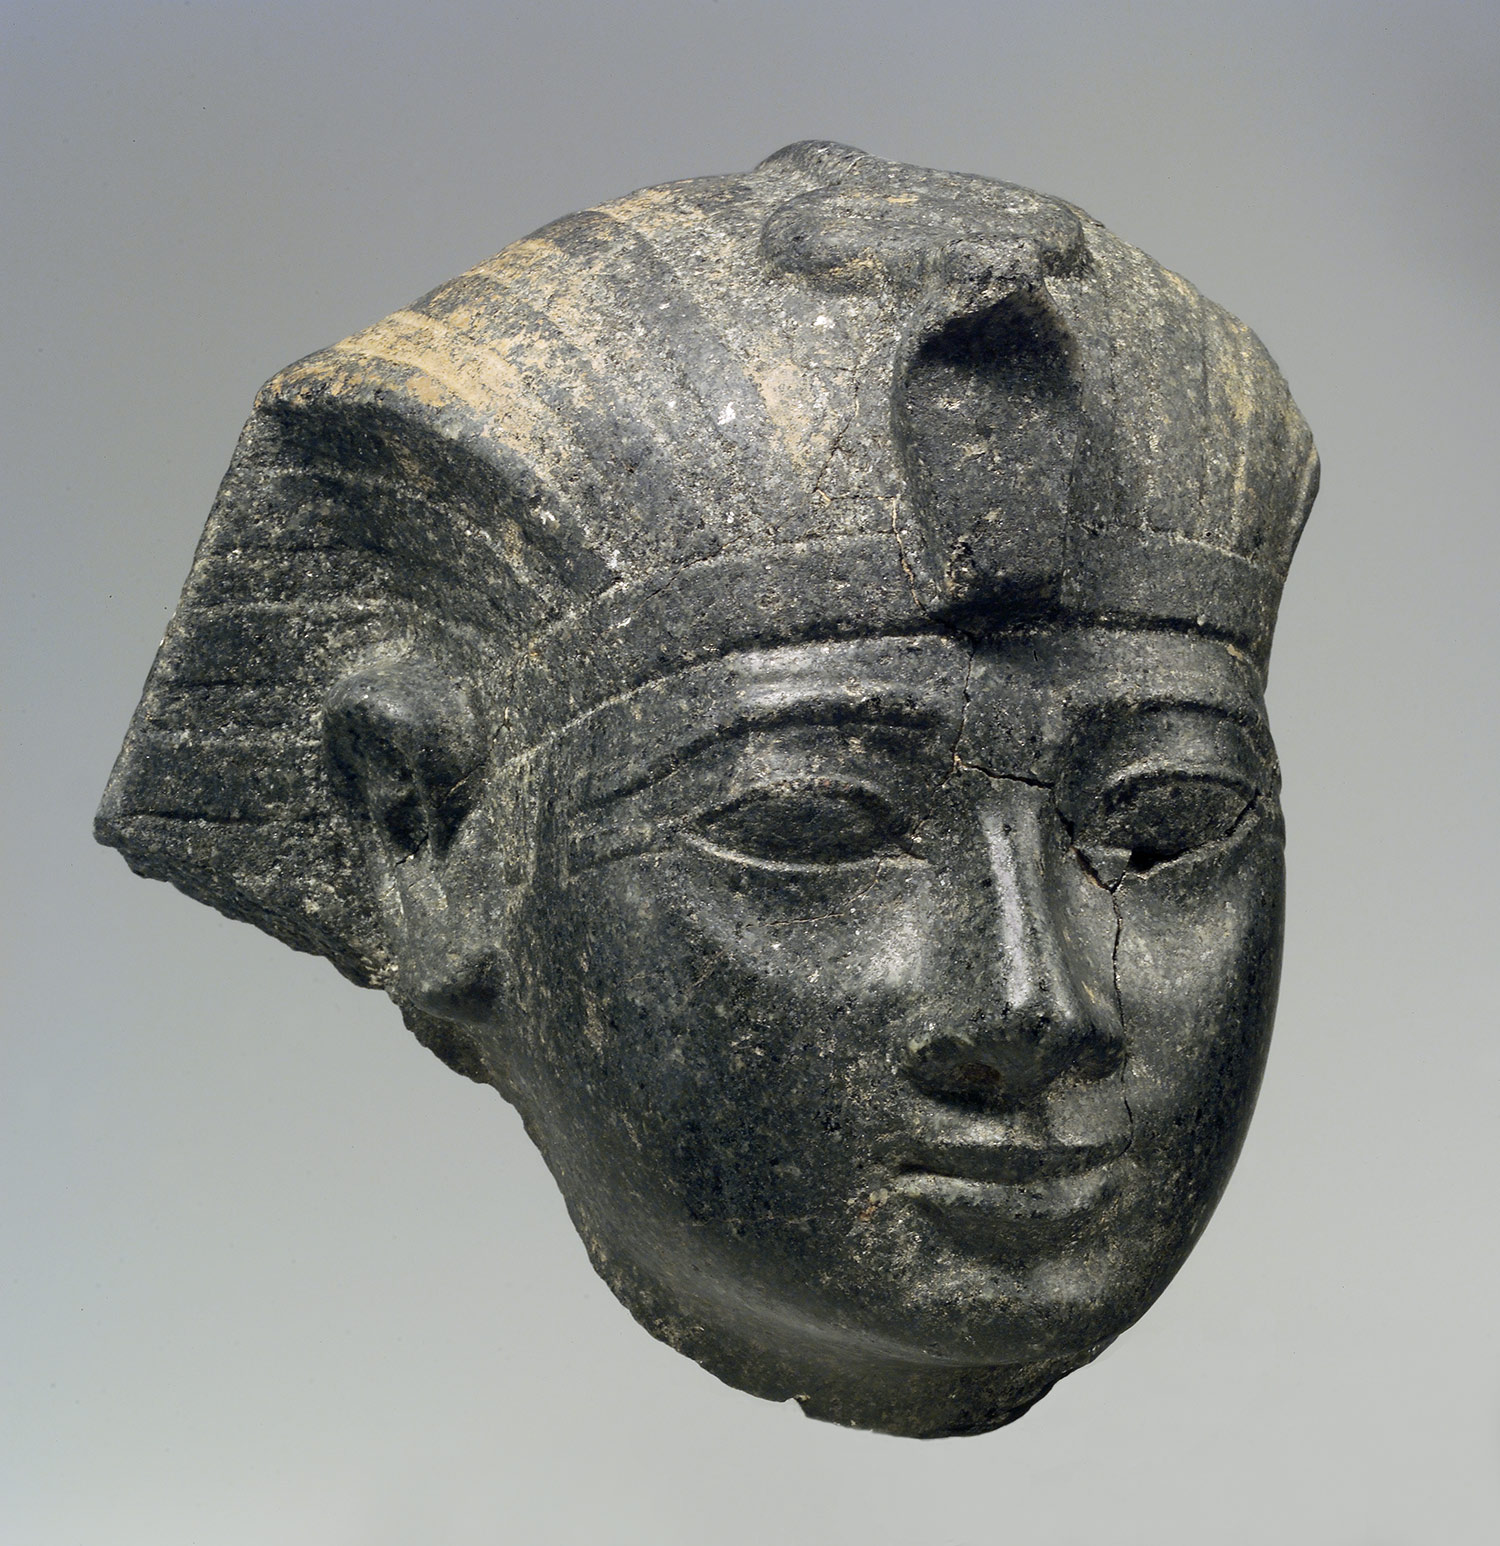 Head of Amenhotep II [Egyptian] (66.